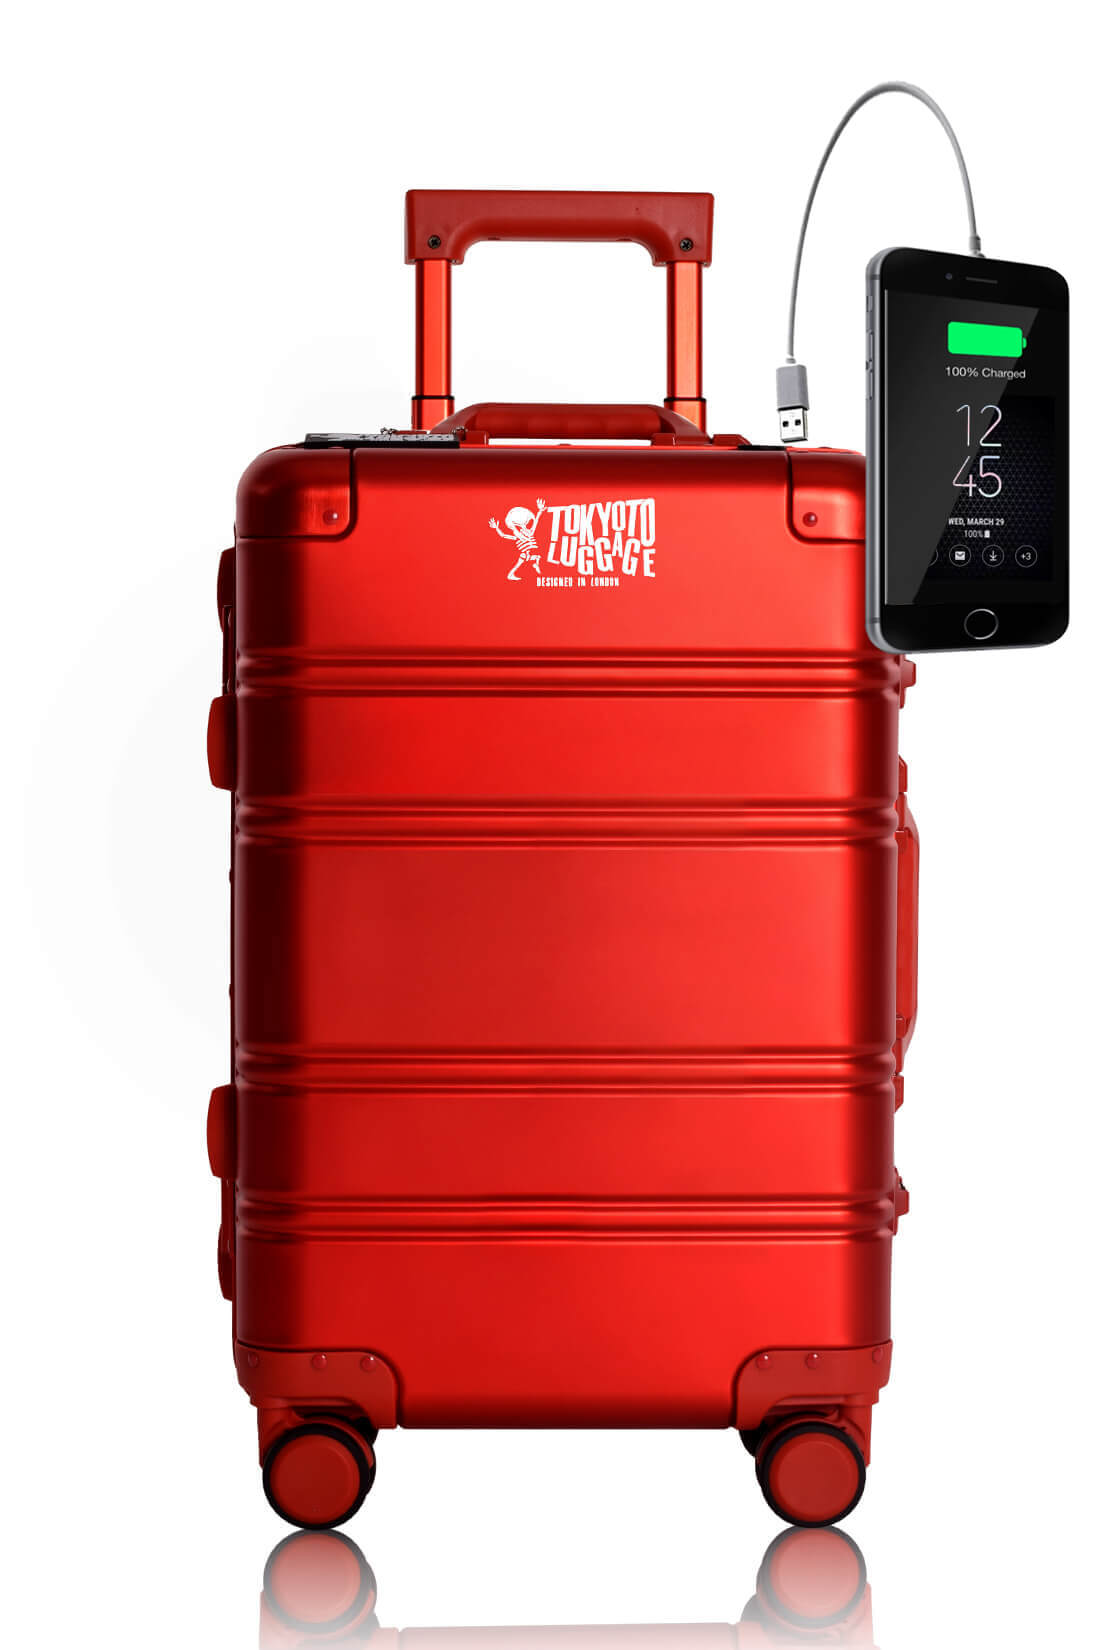 Full Aluminum Suitcase Cabin Size Carry-on Luggage Trolley RED LOGO